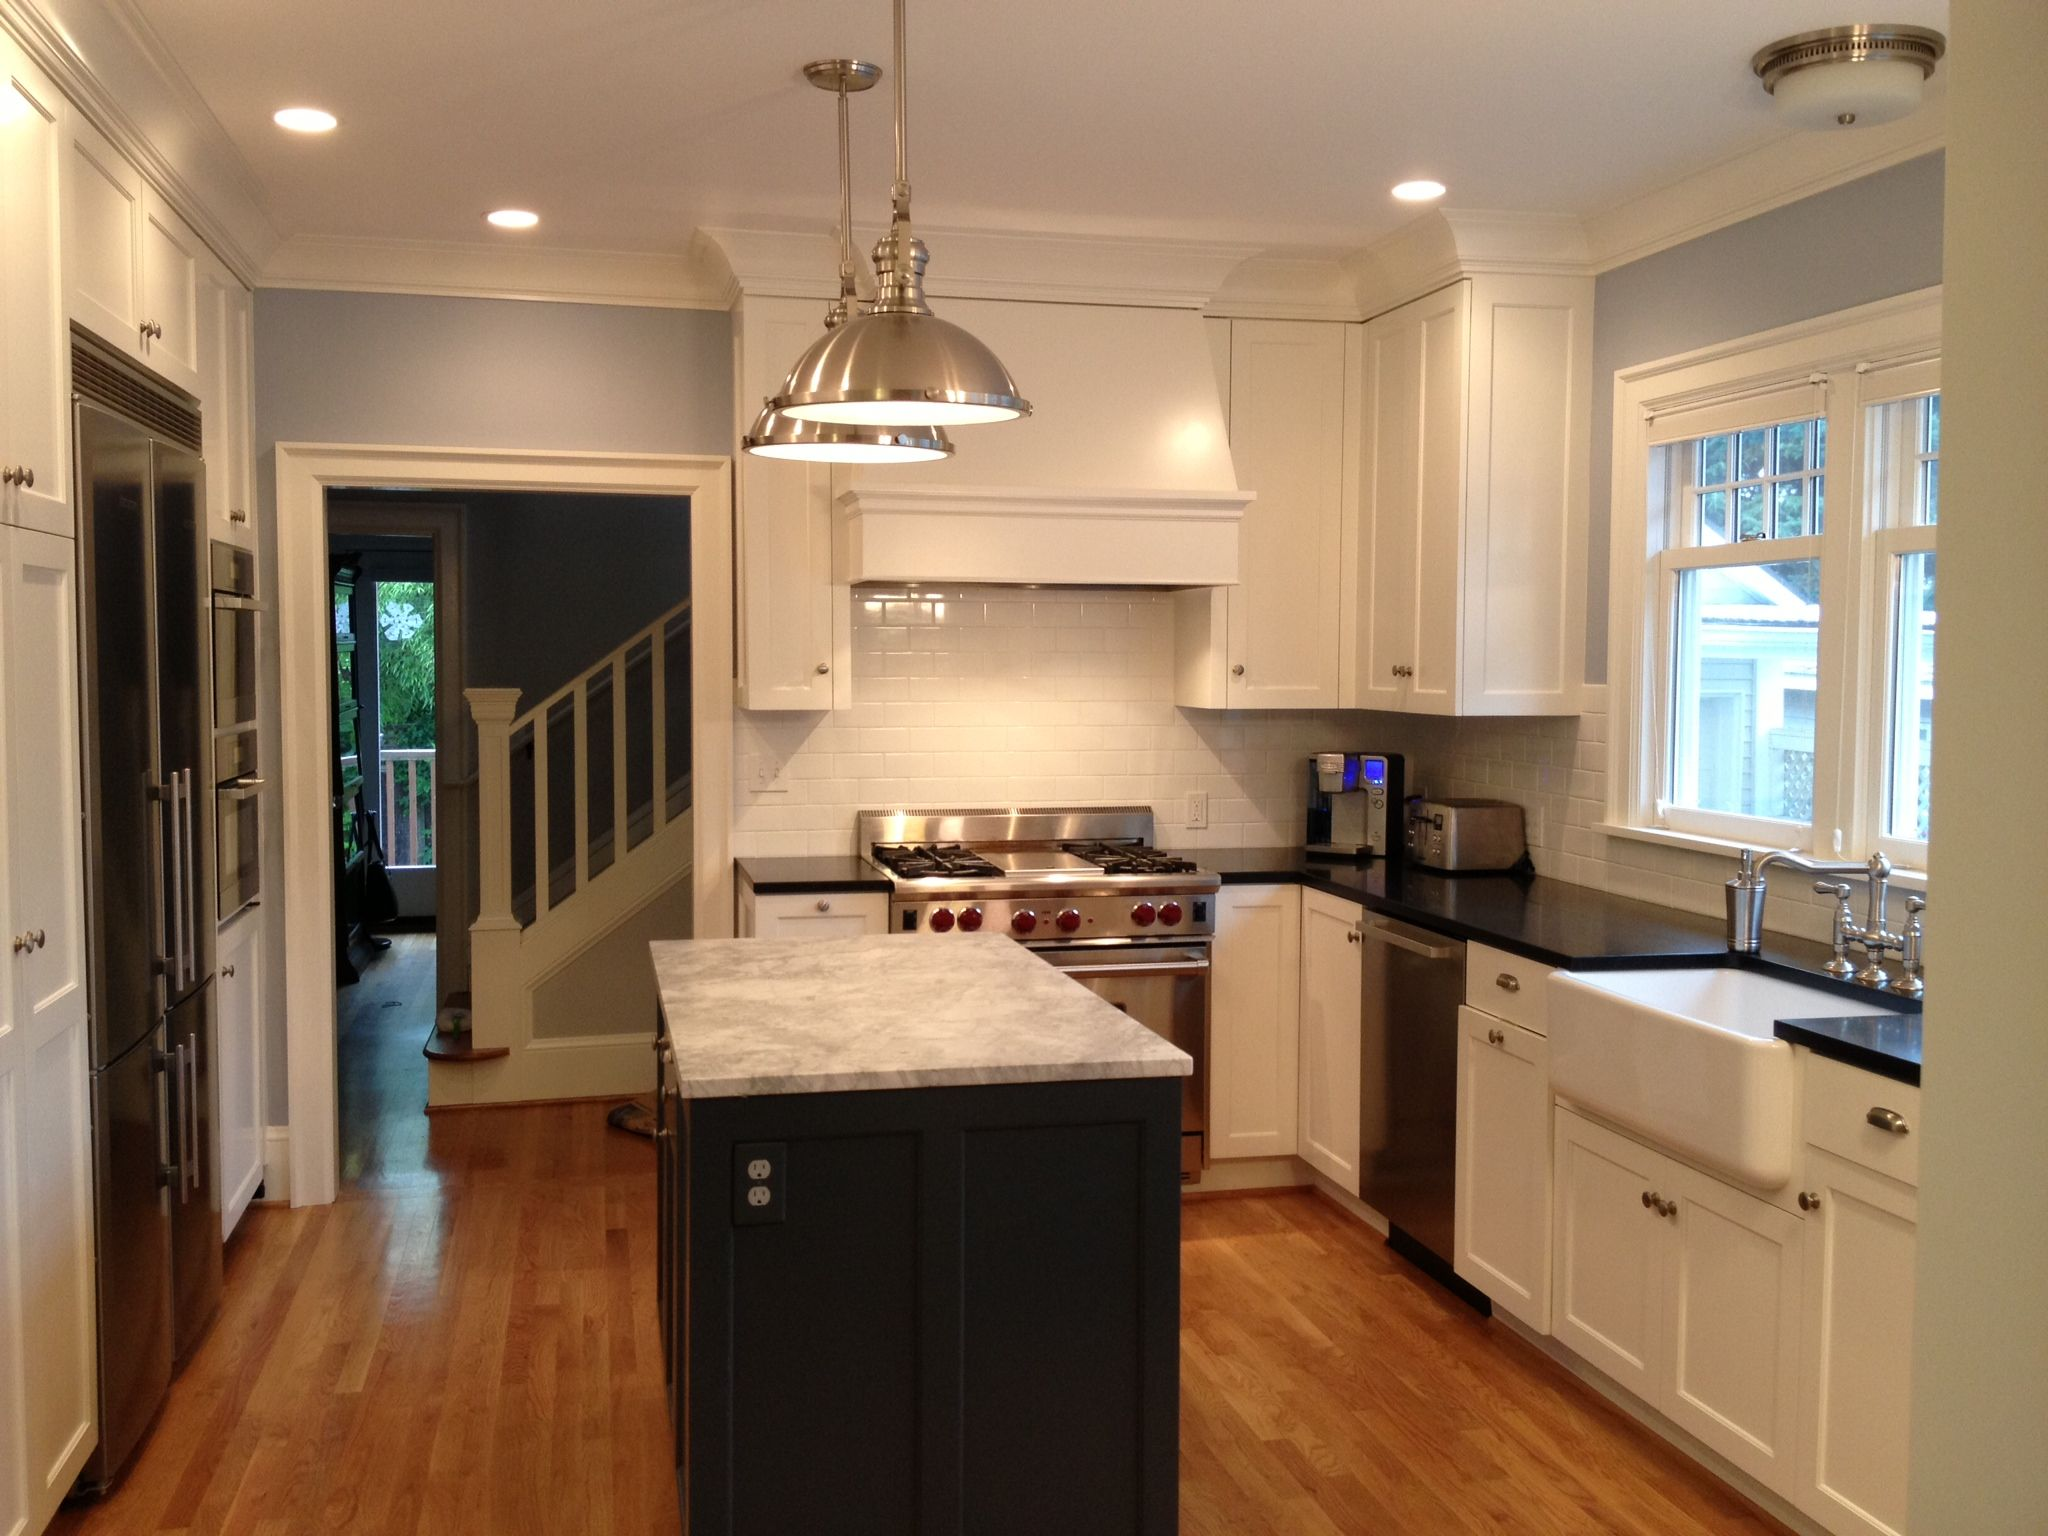 Beautiful Full Kitchen View In 1920u0027s Home; White Custom Cabinets; Moonlight Marble  Island With Contrasting